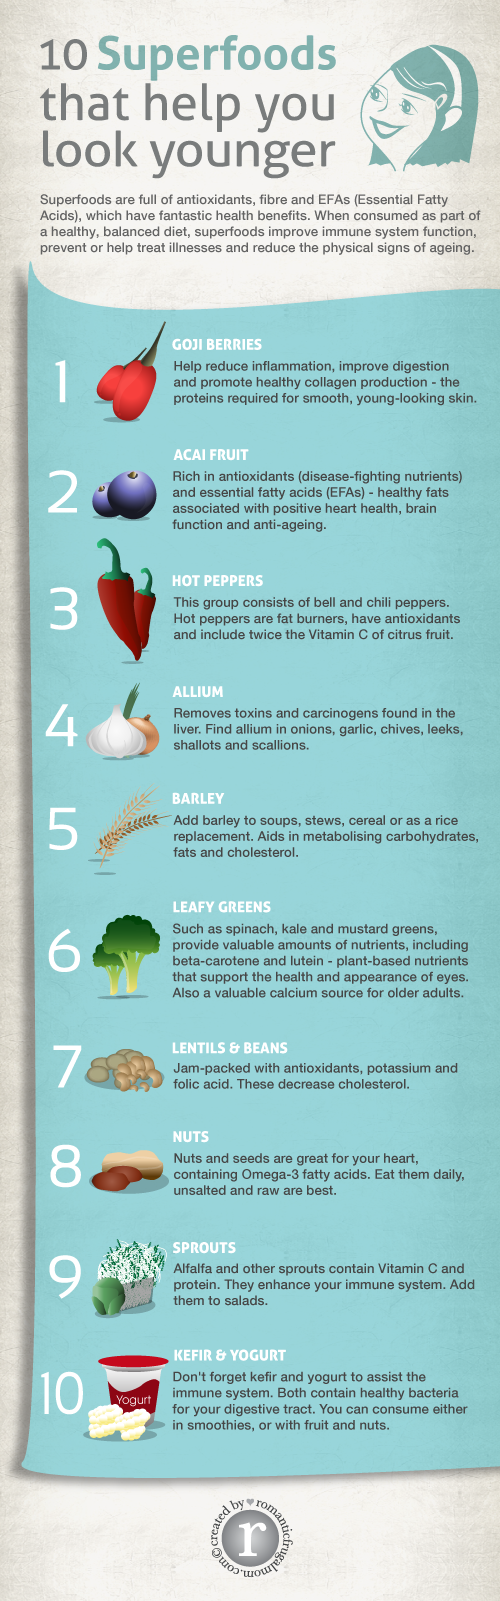 10 Super Foods That Help You Look Younger